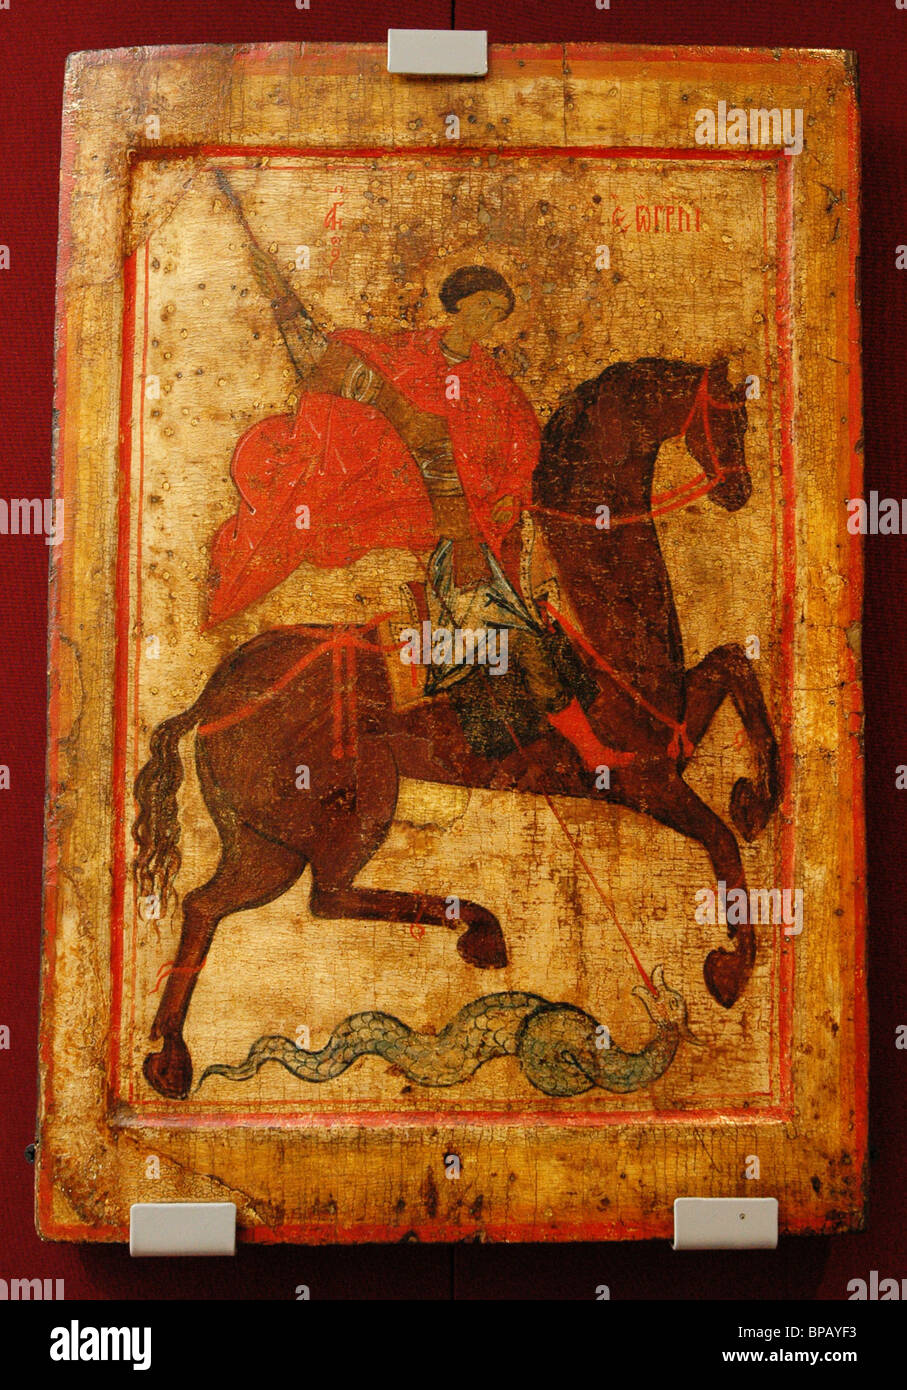 Exhibition of Russian Icons from private collections opens in the Andrei Rublyov Museum - Stock Image